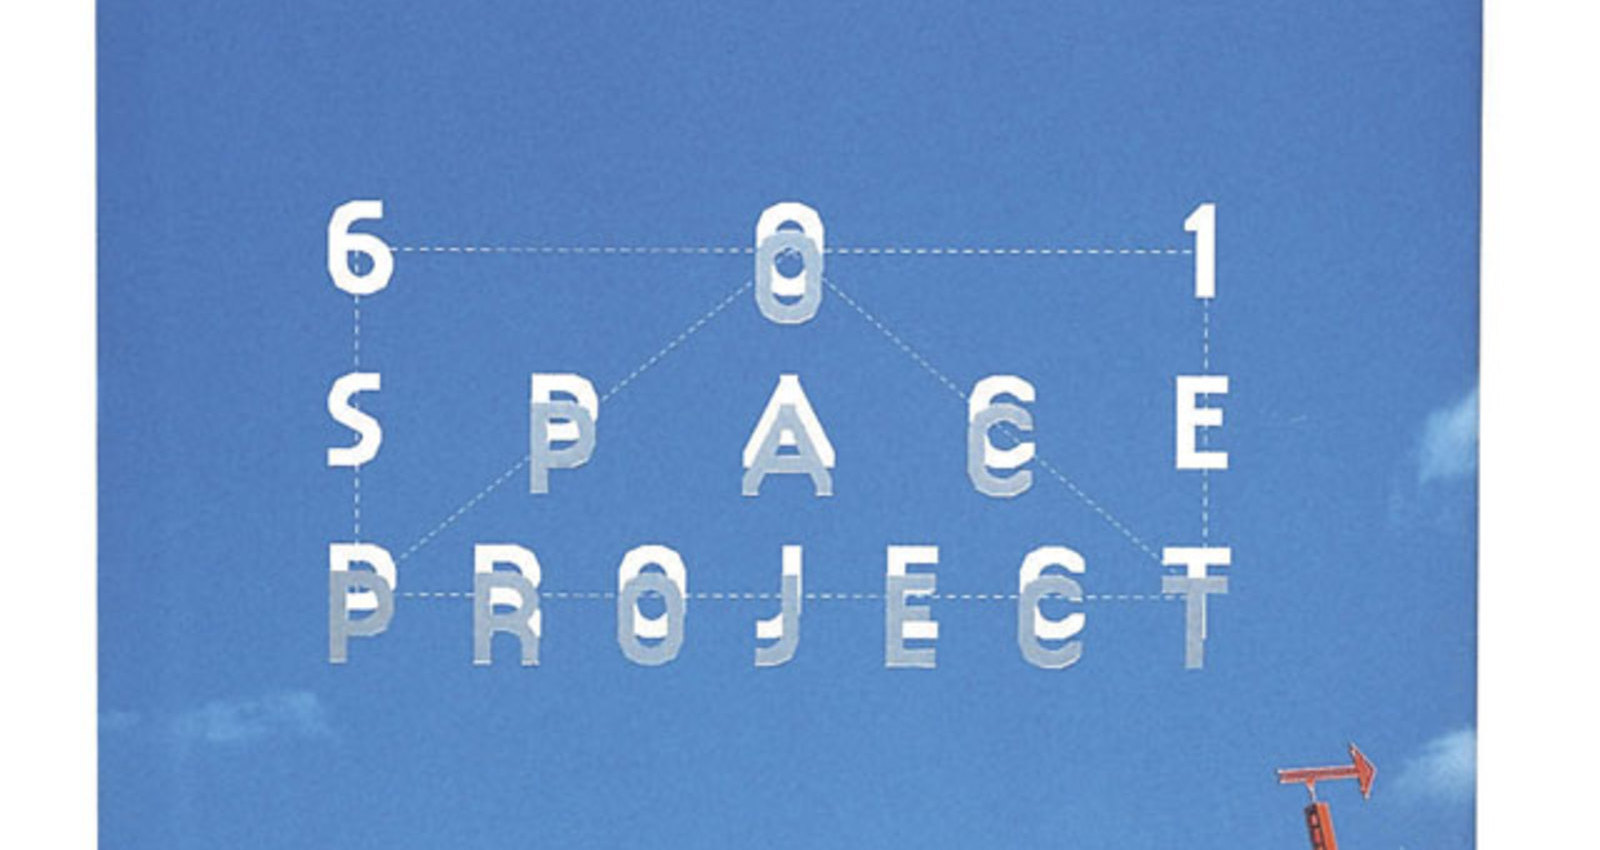 601 SPACE PROJECT